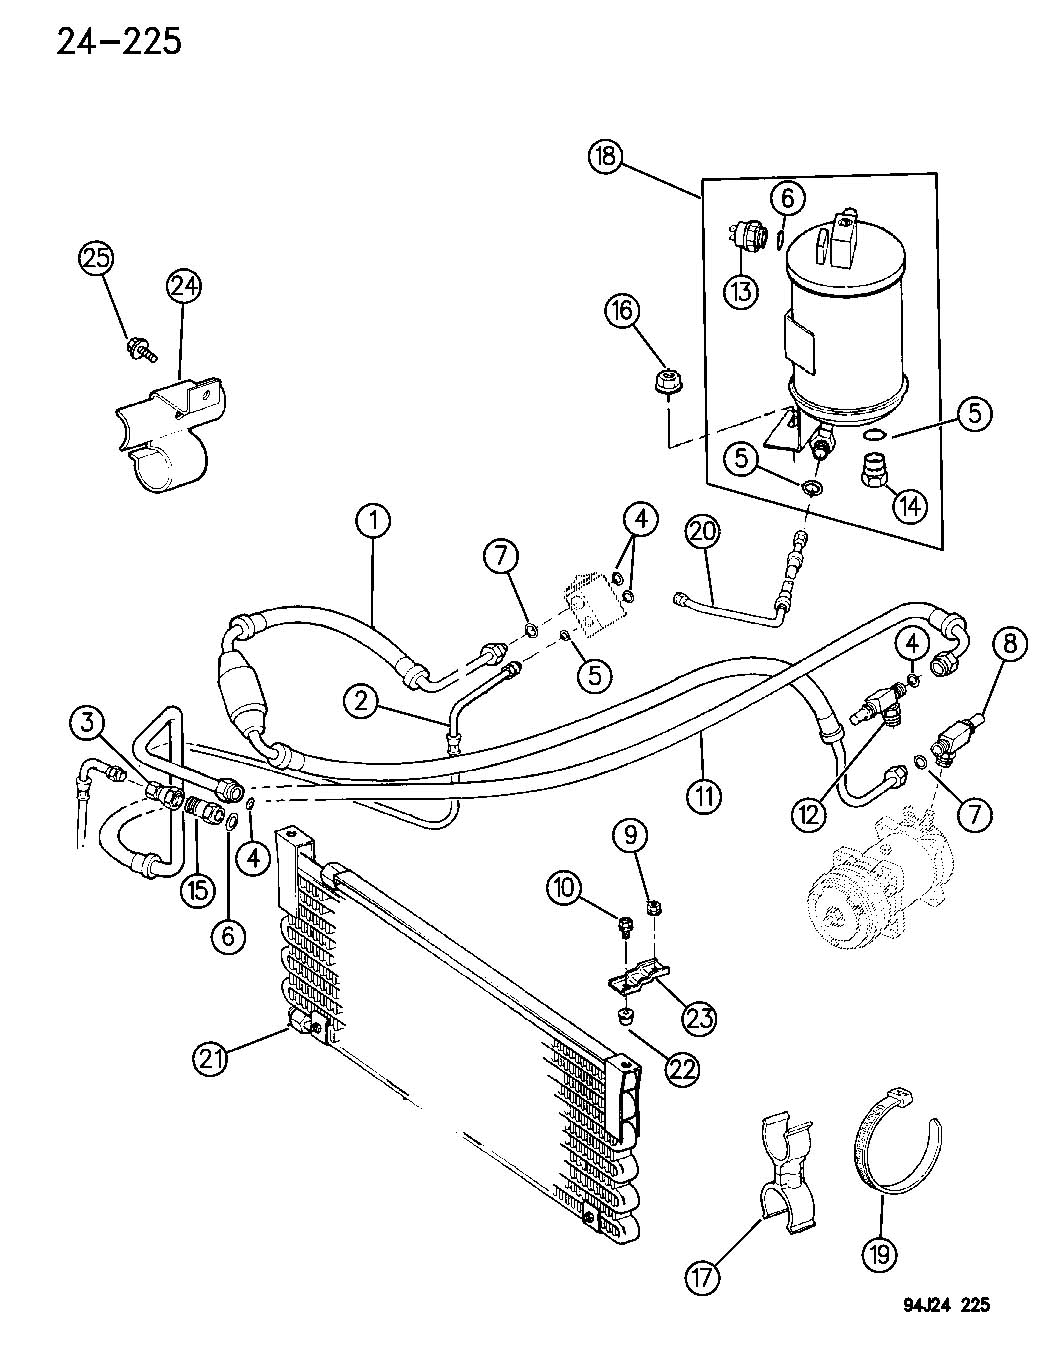 1996 jeep cherokee factory service manual